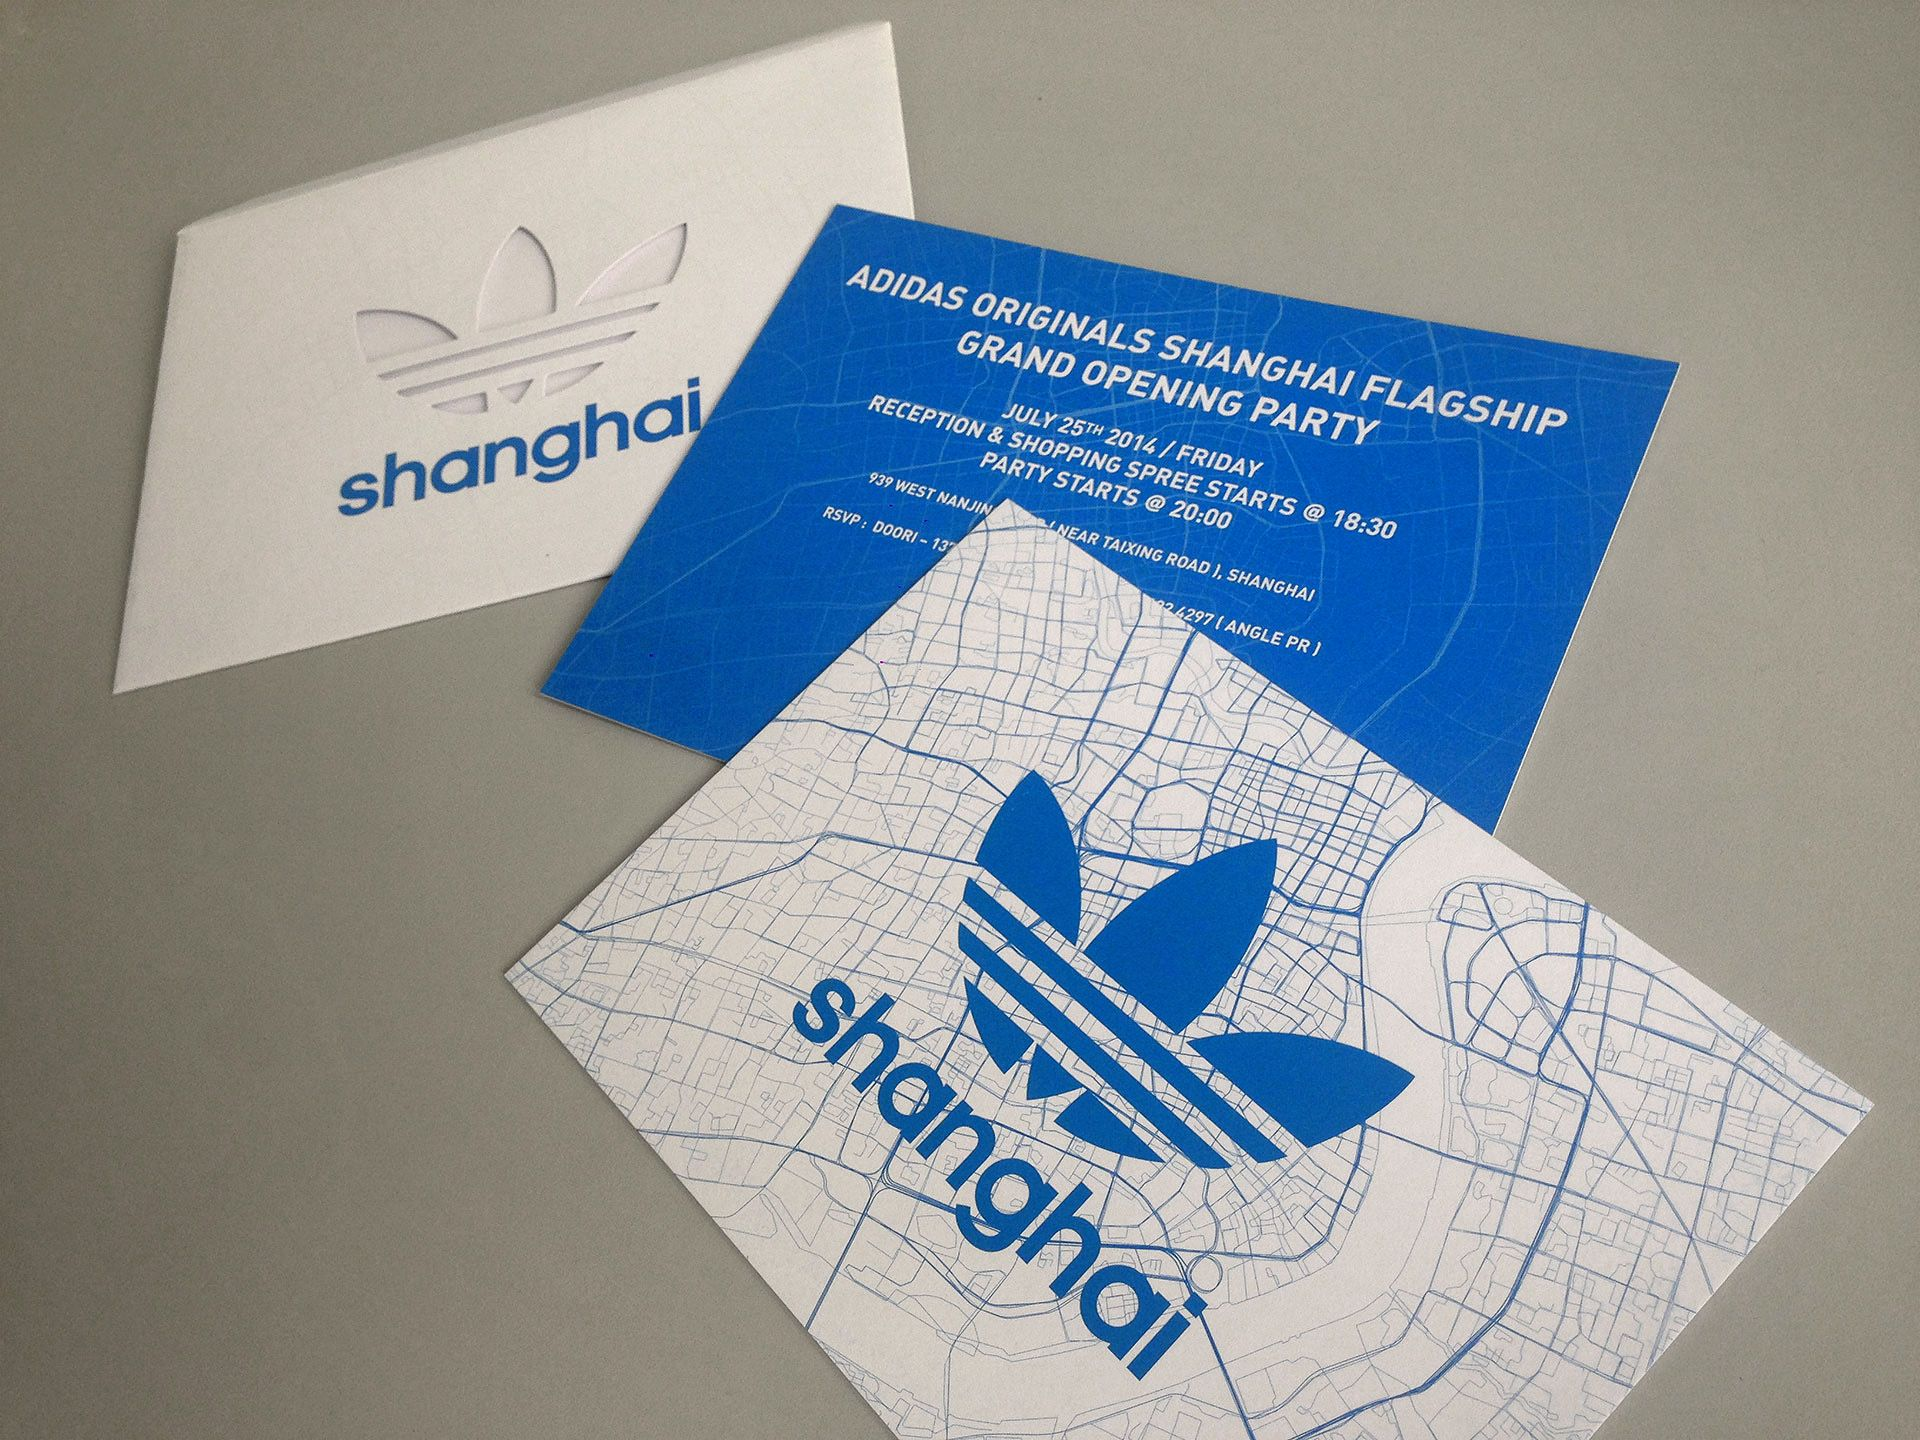 Promotion design items by Name&Name for Adidas Originals Shanghai Flagship Store - Launch party invite design.